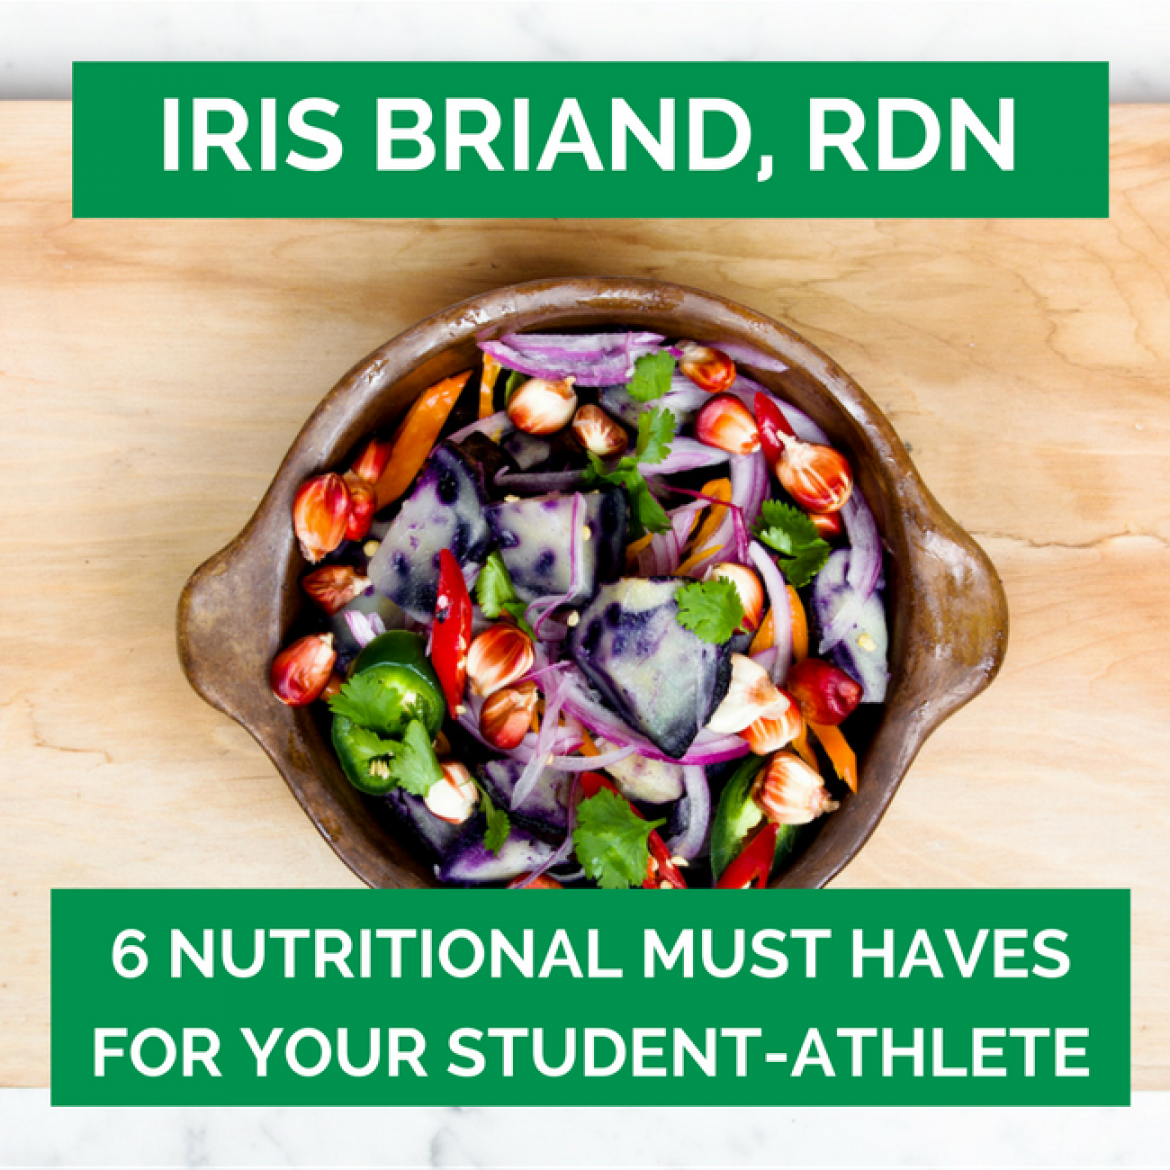 45: Iris Briand, RDN – 6 Nutritional Must-Haves For Your Student-Athlete